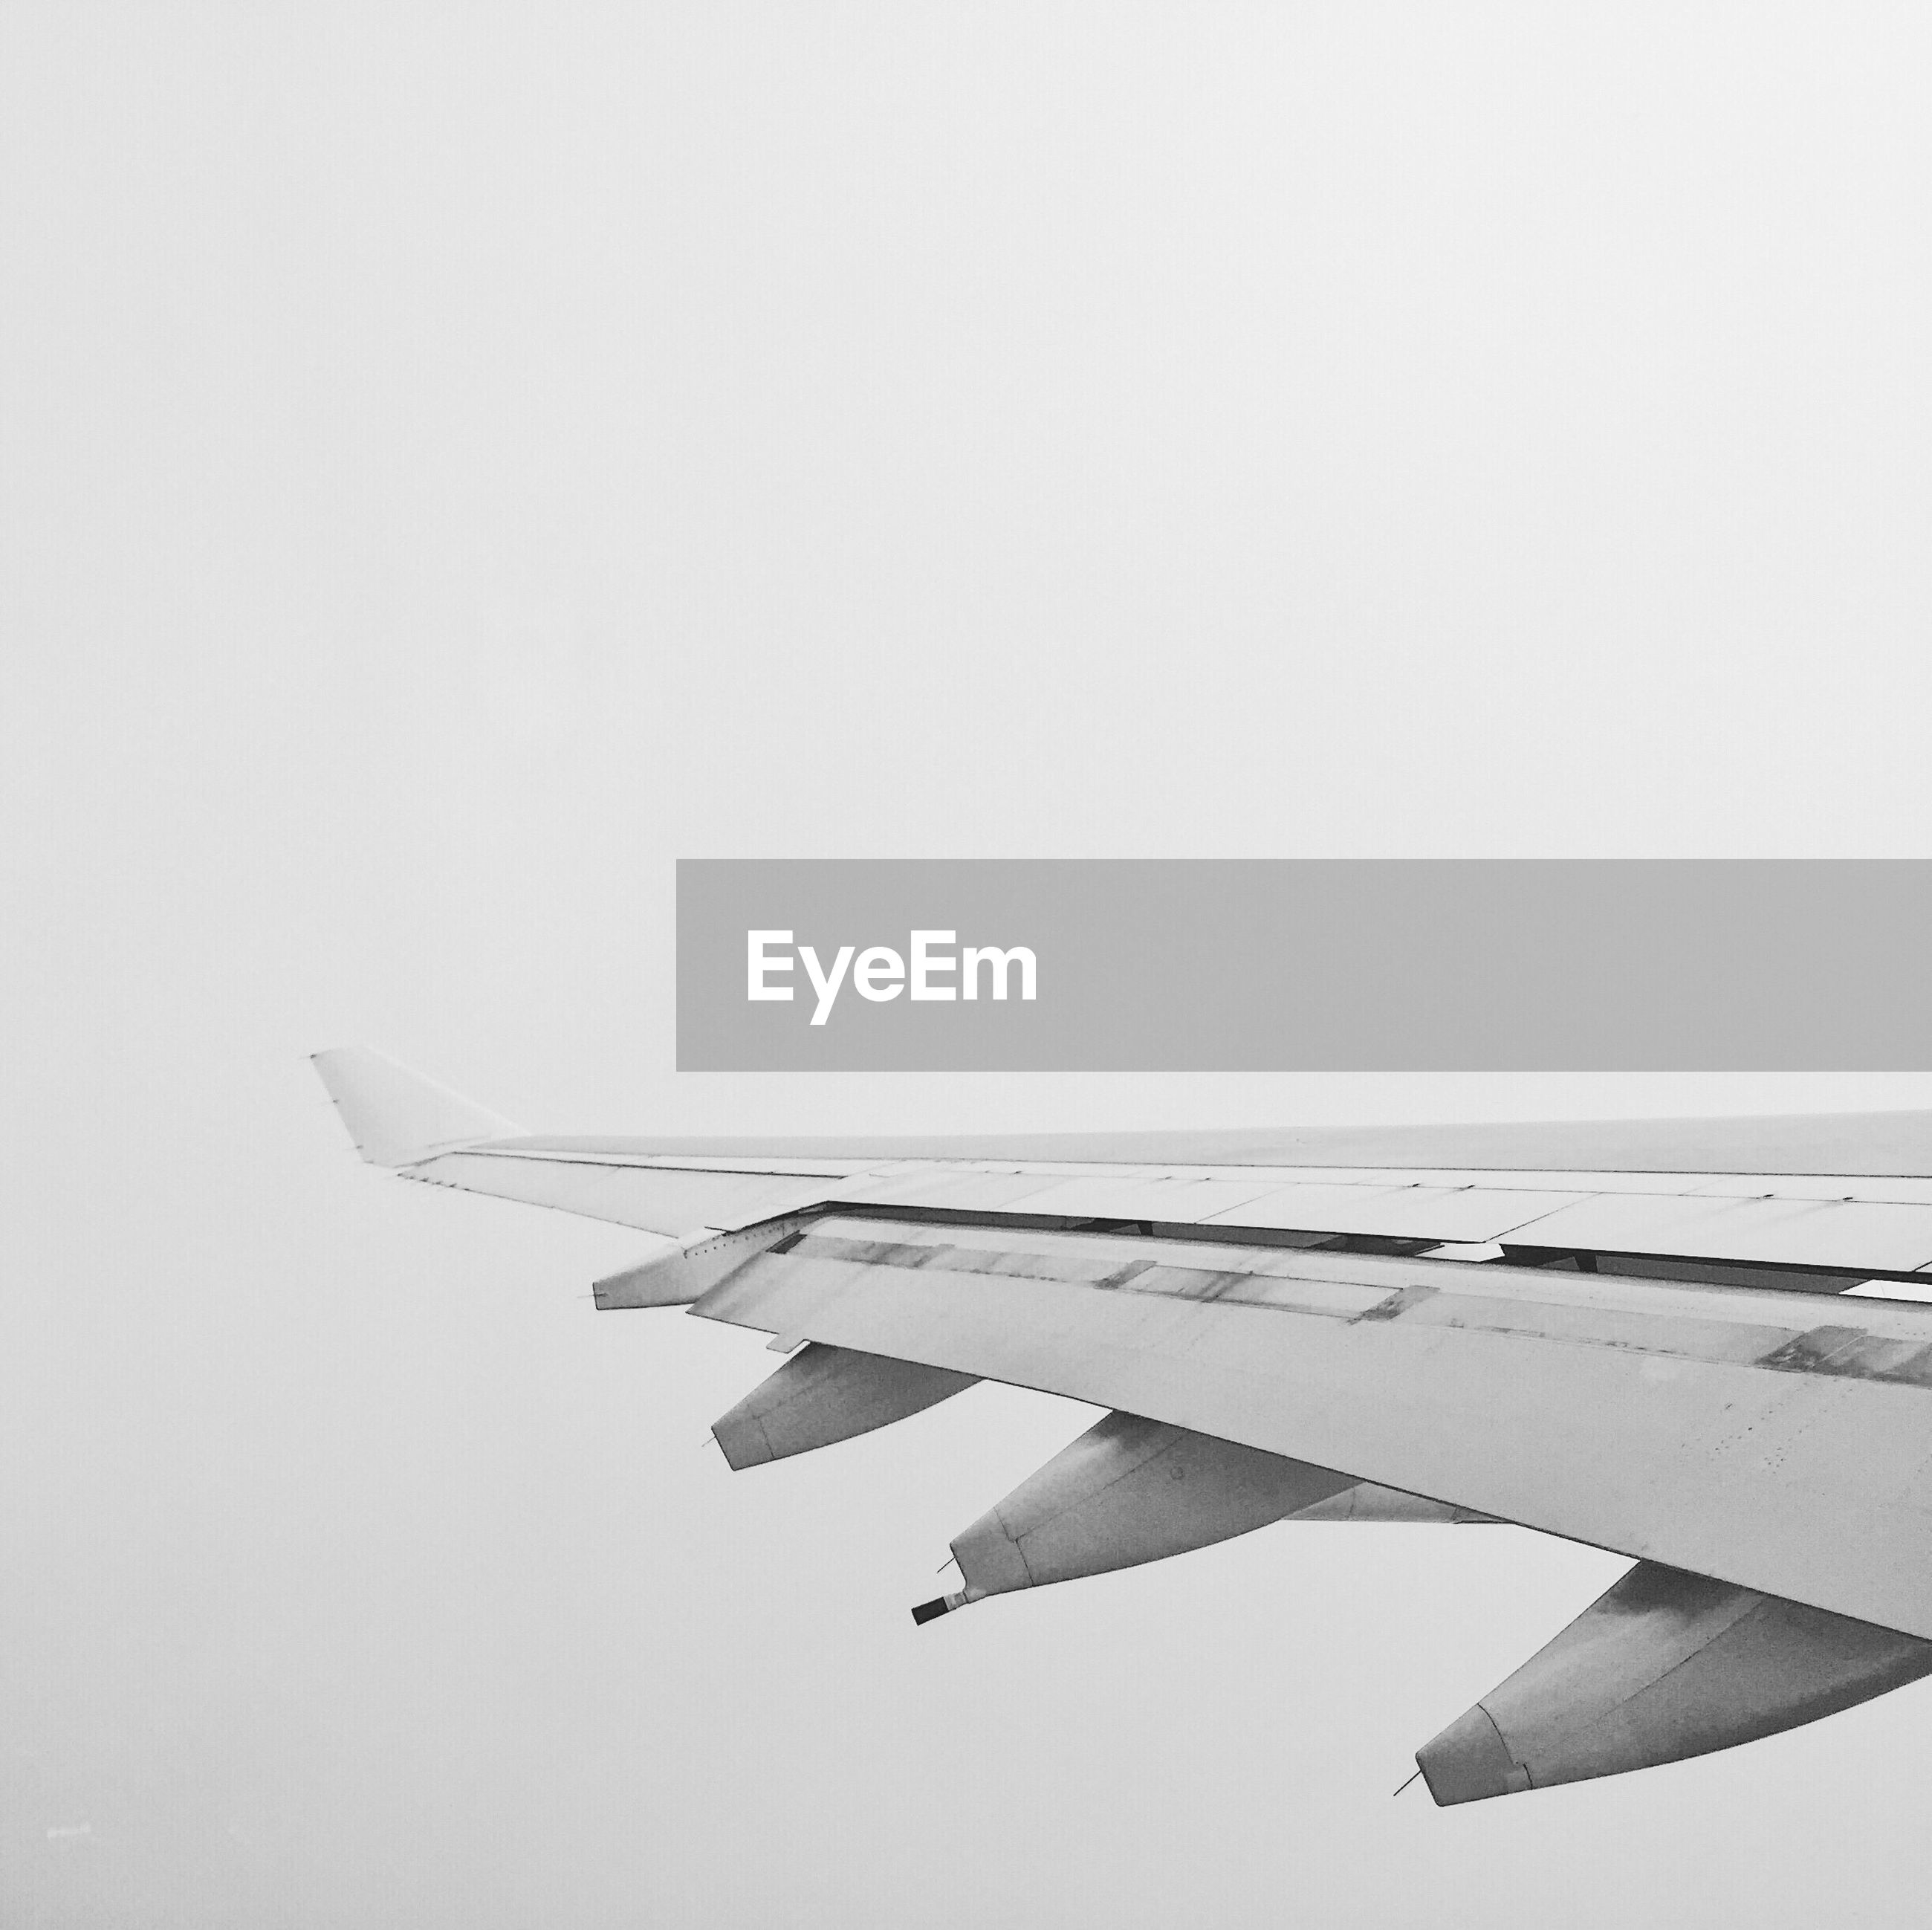 CLOSE-UP OF AIRPLANE WING AGAINST SKY